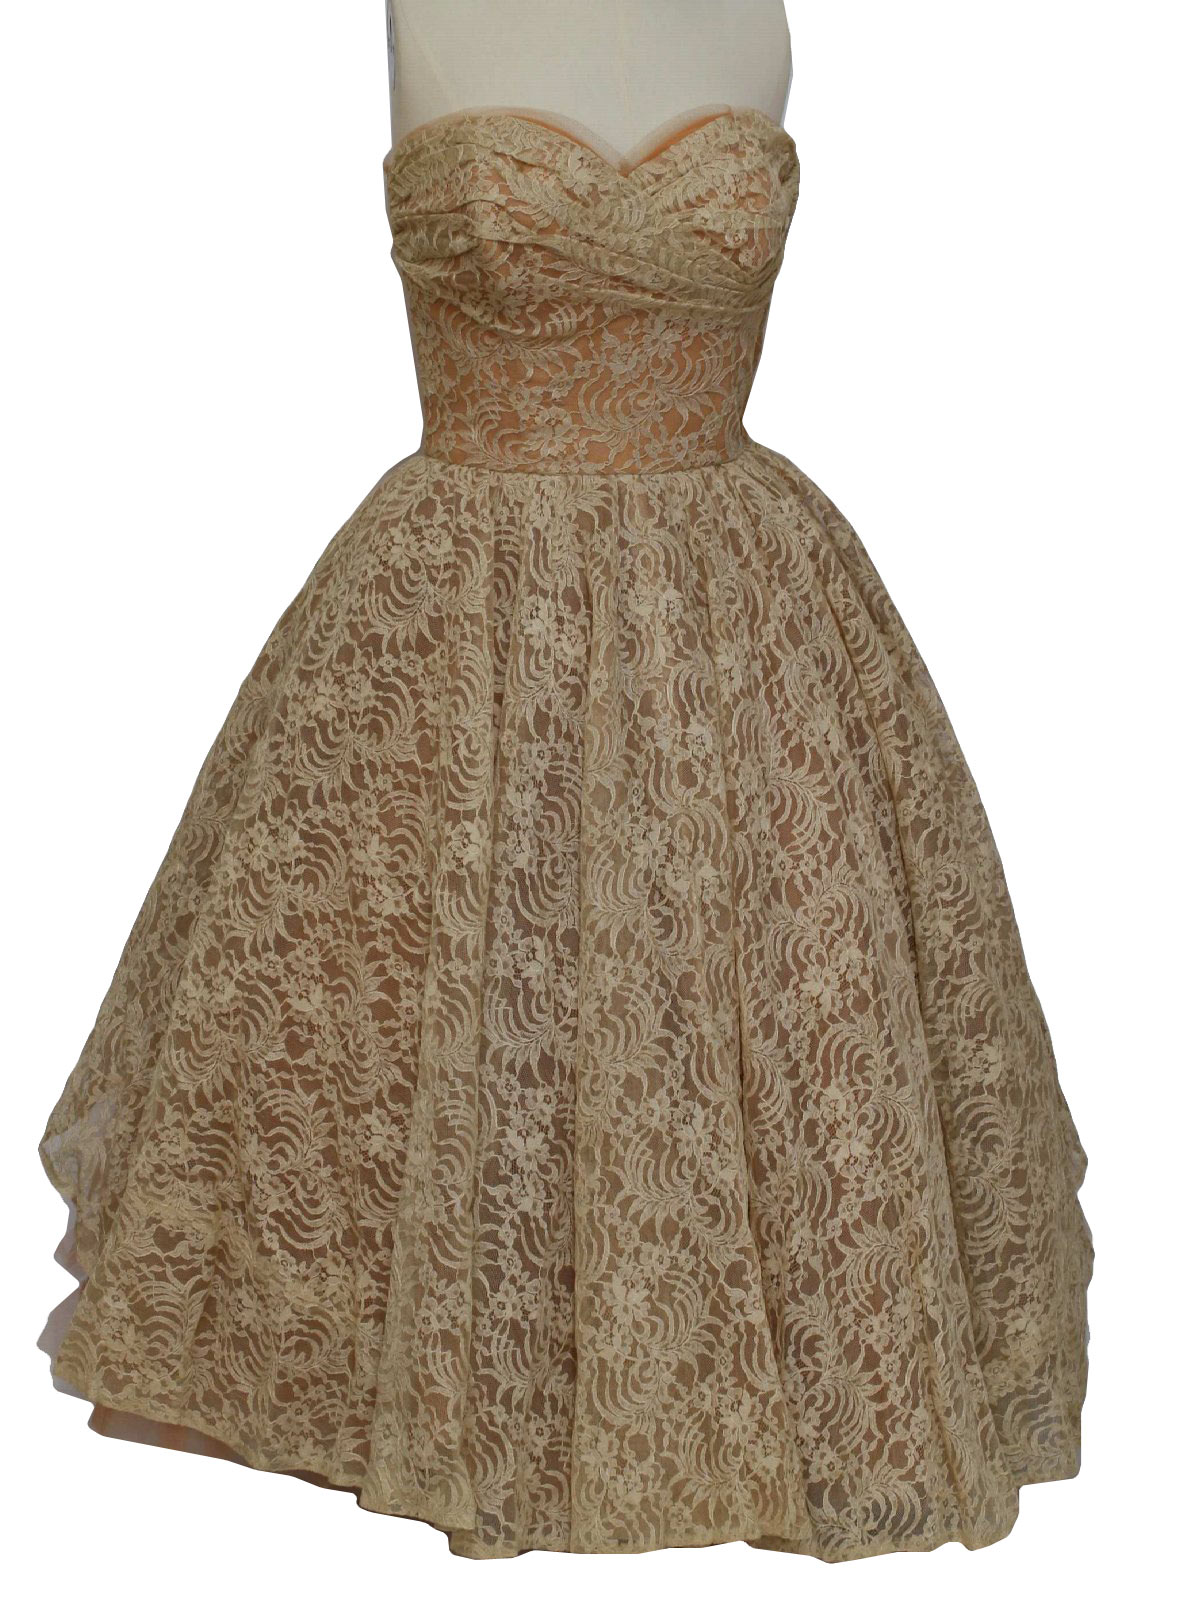 50s -Will Steinman Original- Womens pink and cream floor length super bombshell designer new look 50s cocktail dress. Daring for the time sleeveless cut with modest pinch pleated cross over bodice, side metal zip closure and empire waistline that falls to full skirt. The best part is always walking away and when you do the crinoline lined full skirt back will show all your finer features with lace panel dropped cut away section that will surely inspire a quick chase down.